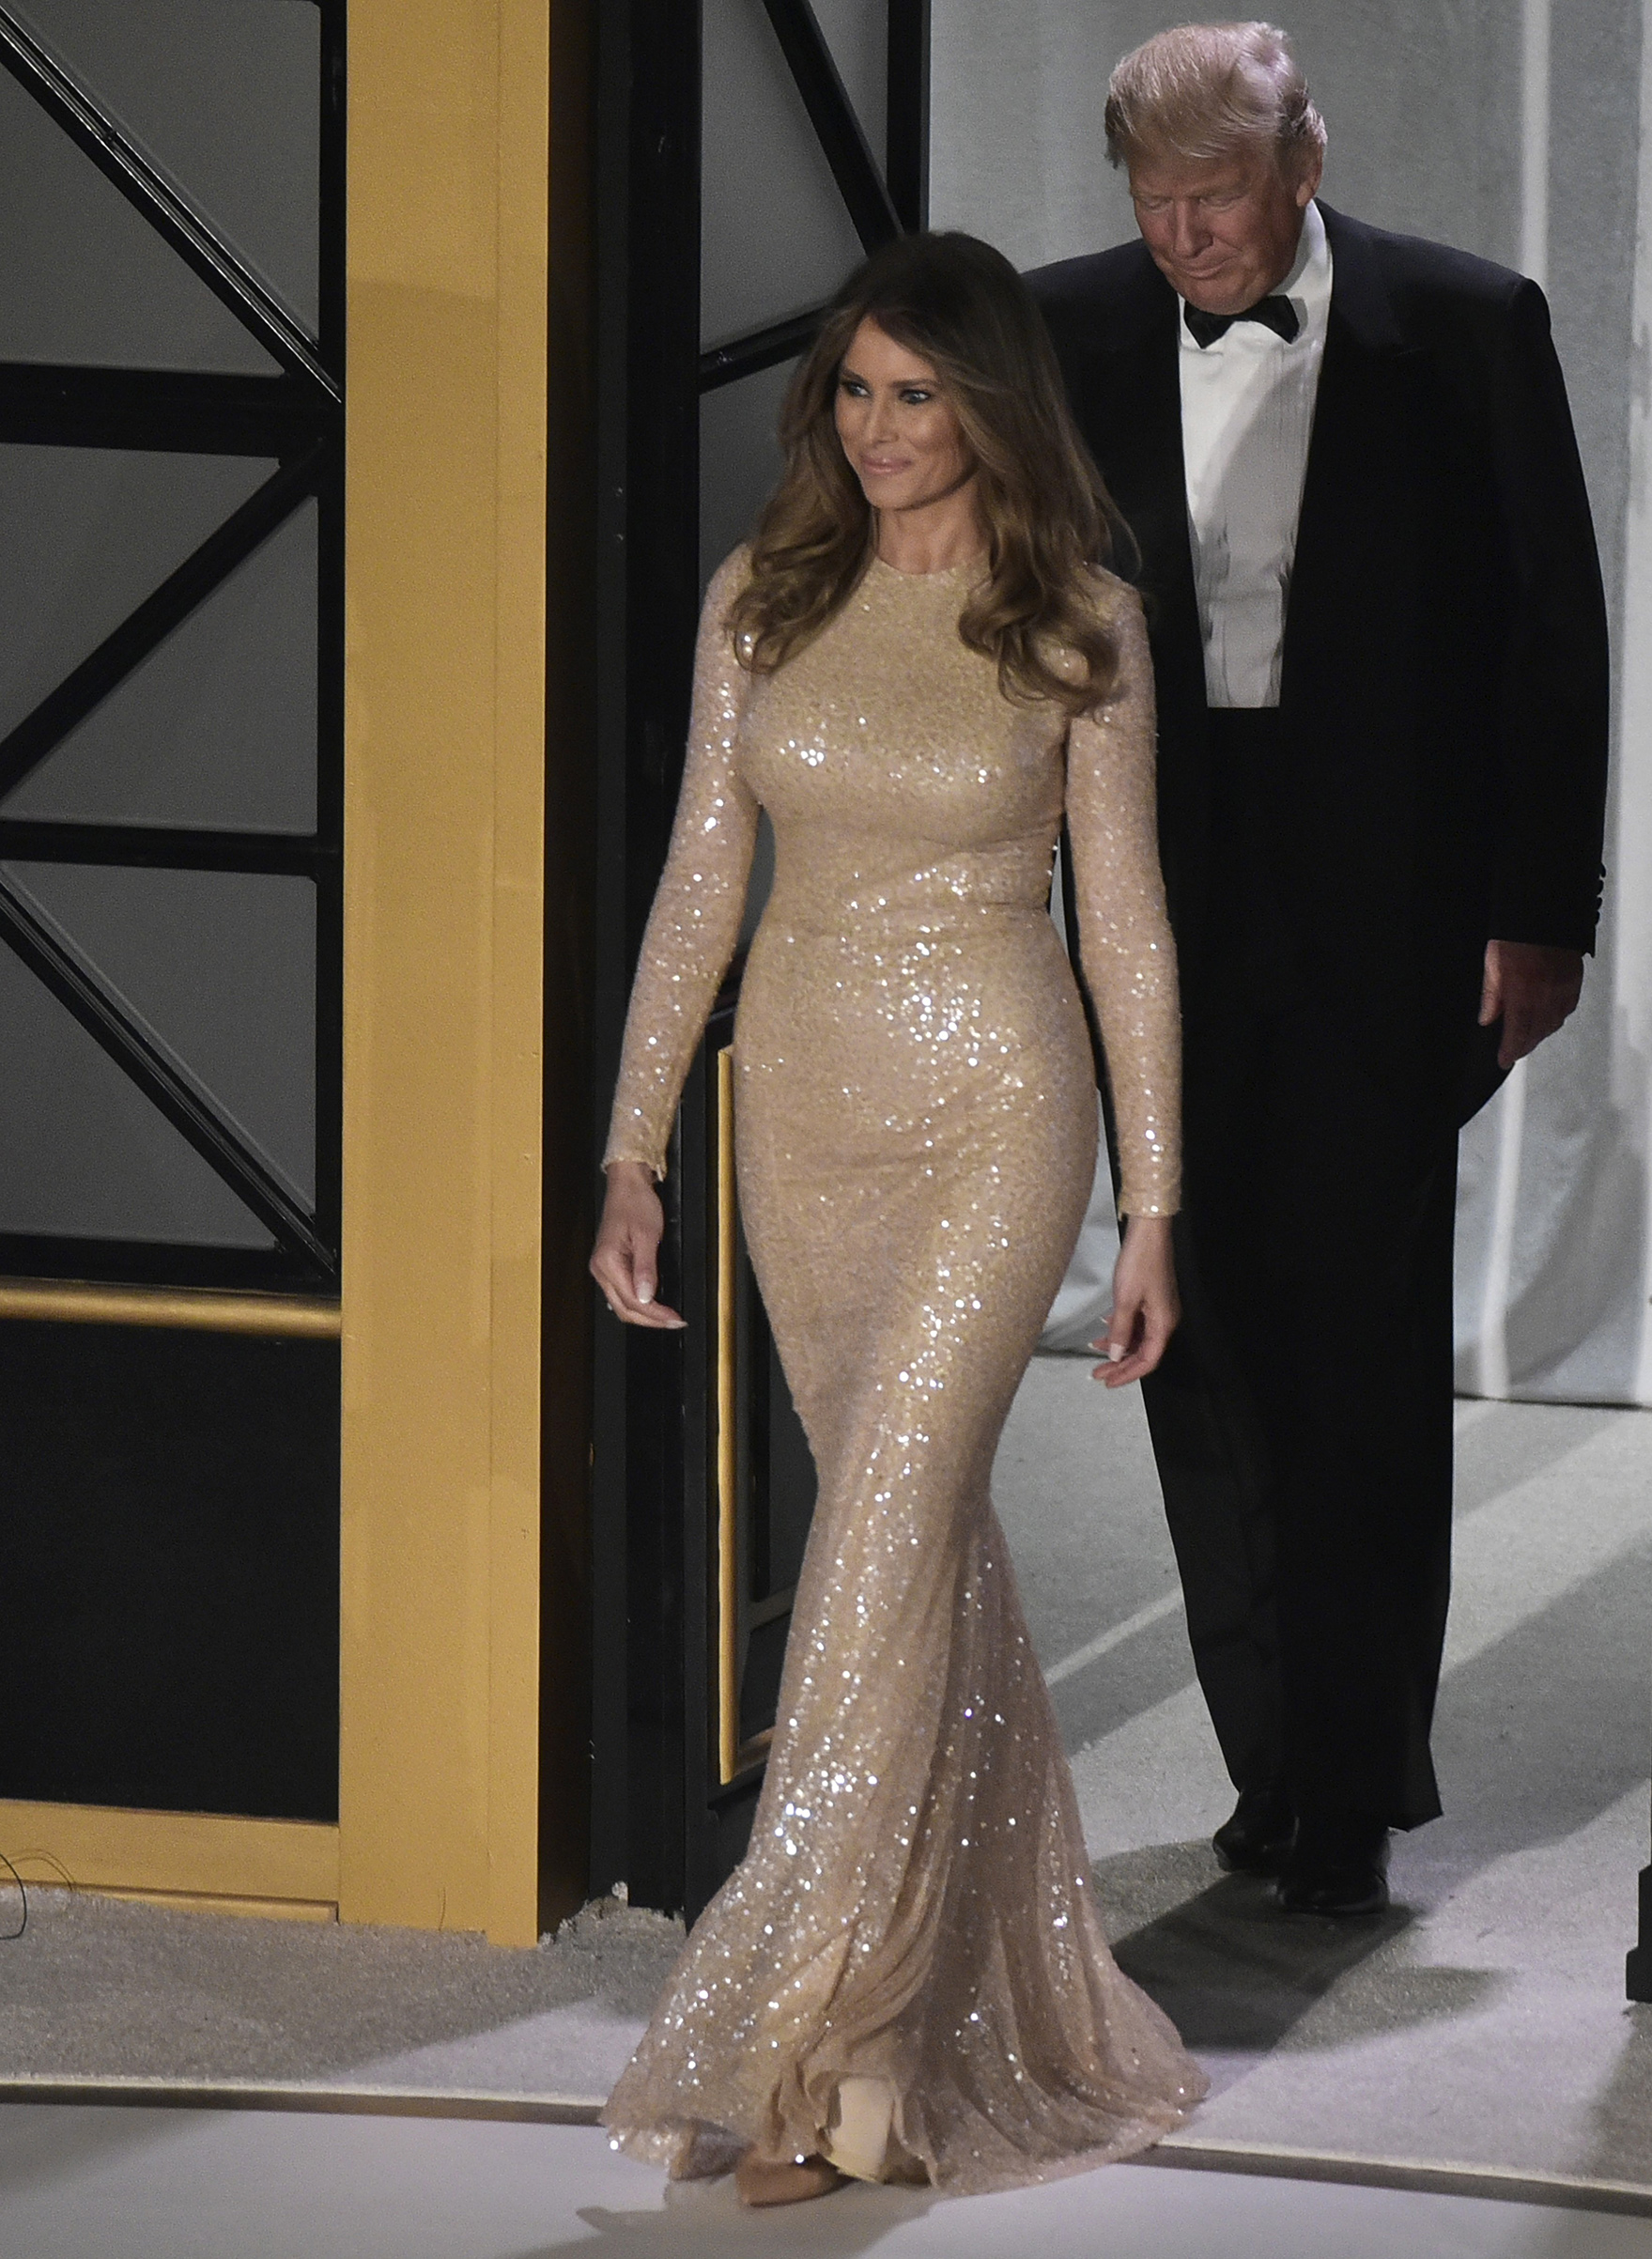 President-elect Donald Trump and wife Melania Trump wearing a Reem Acra embellished gown,  arrive for a  reception and dinner at Union Station in Washington, D.C. on Jan. 19, 2017.